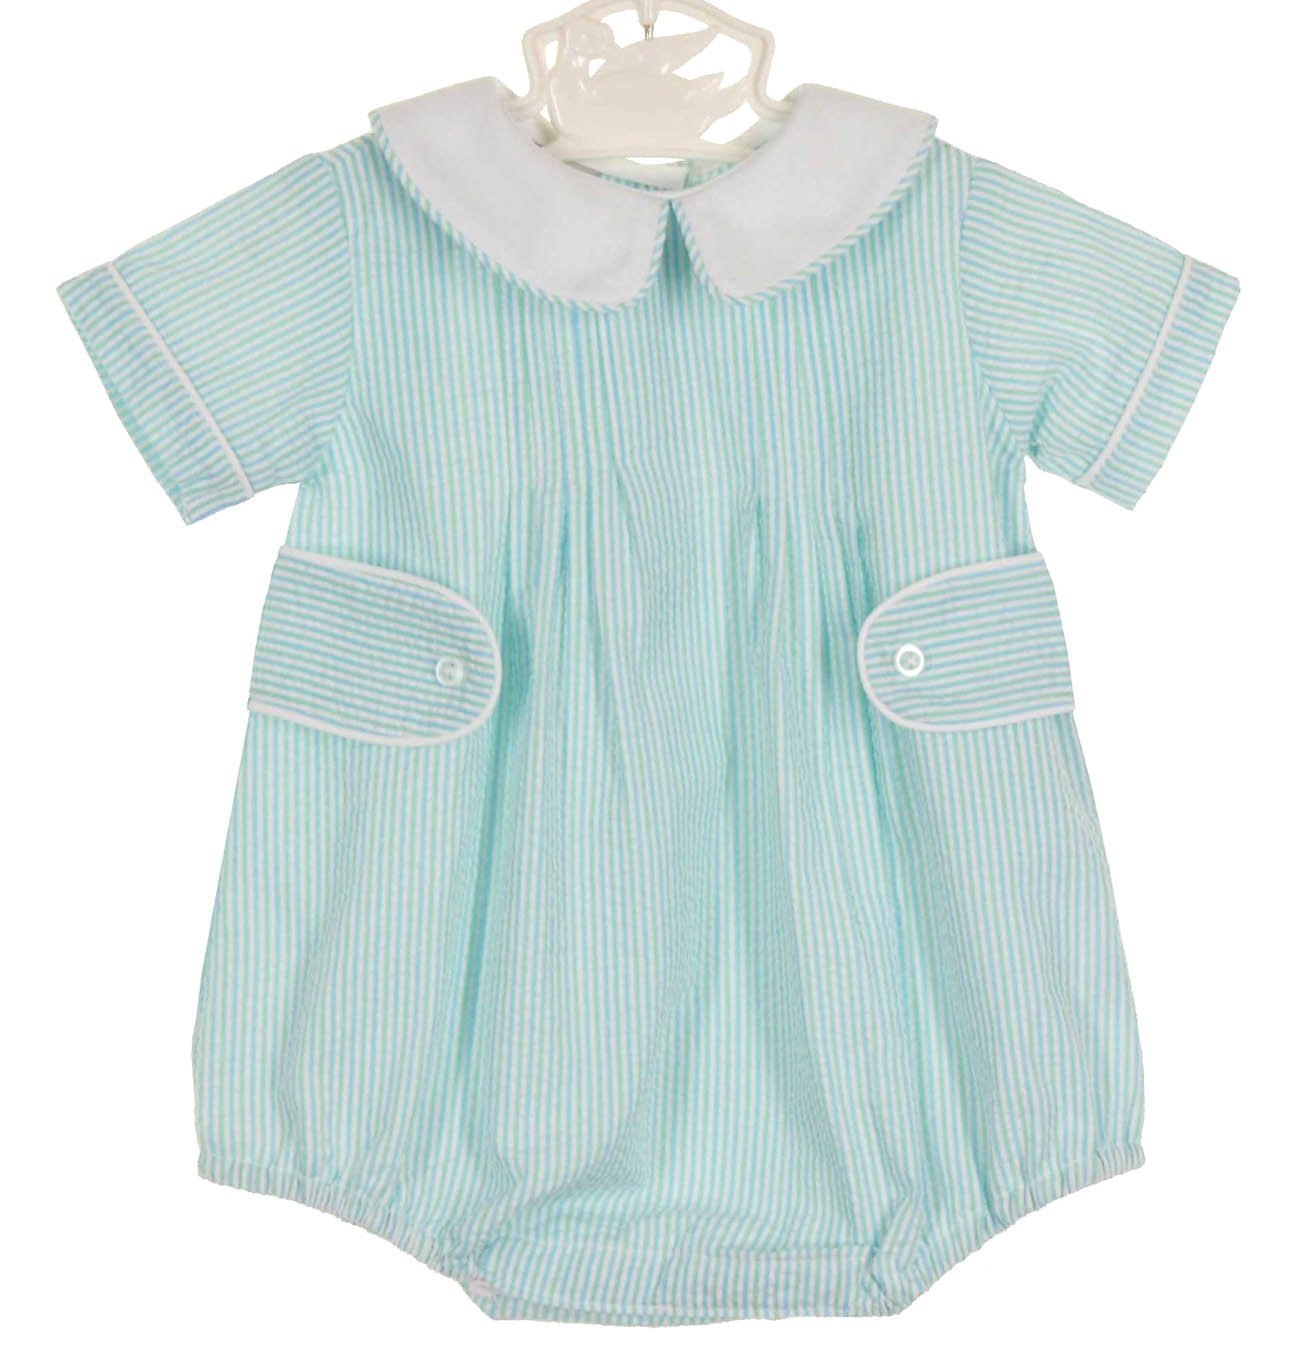 f6201d0ed0d6 NEW Anvy Kids Blue and Green Striped Seersucker Romper with White Collar